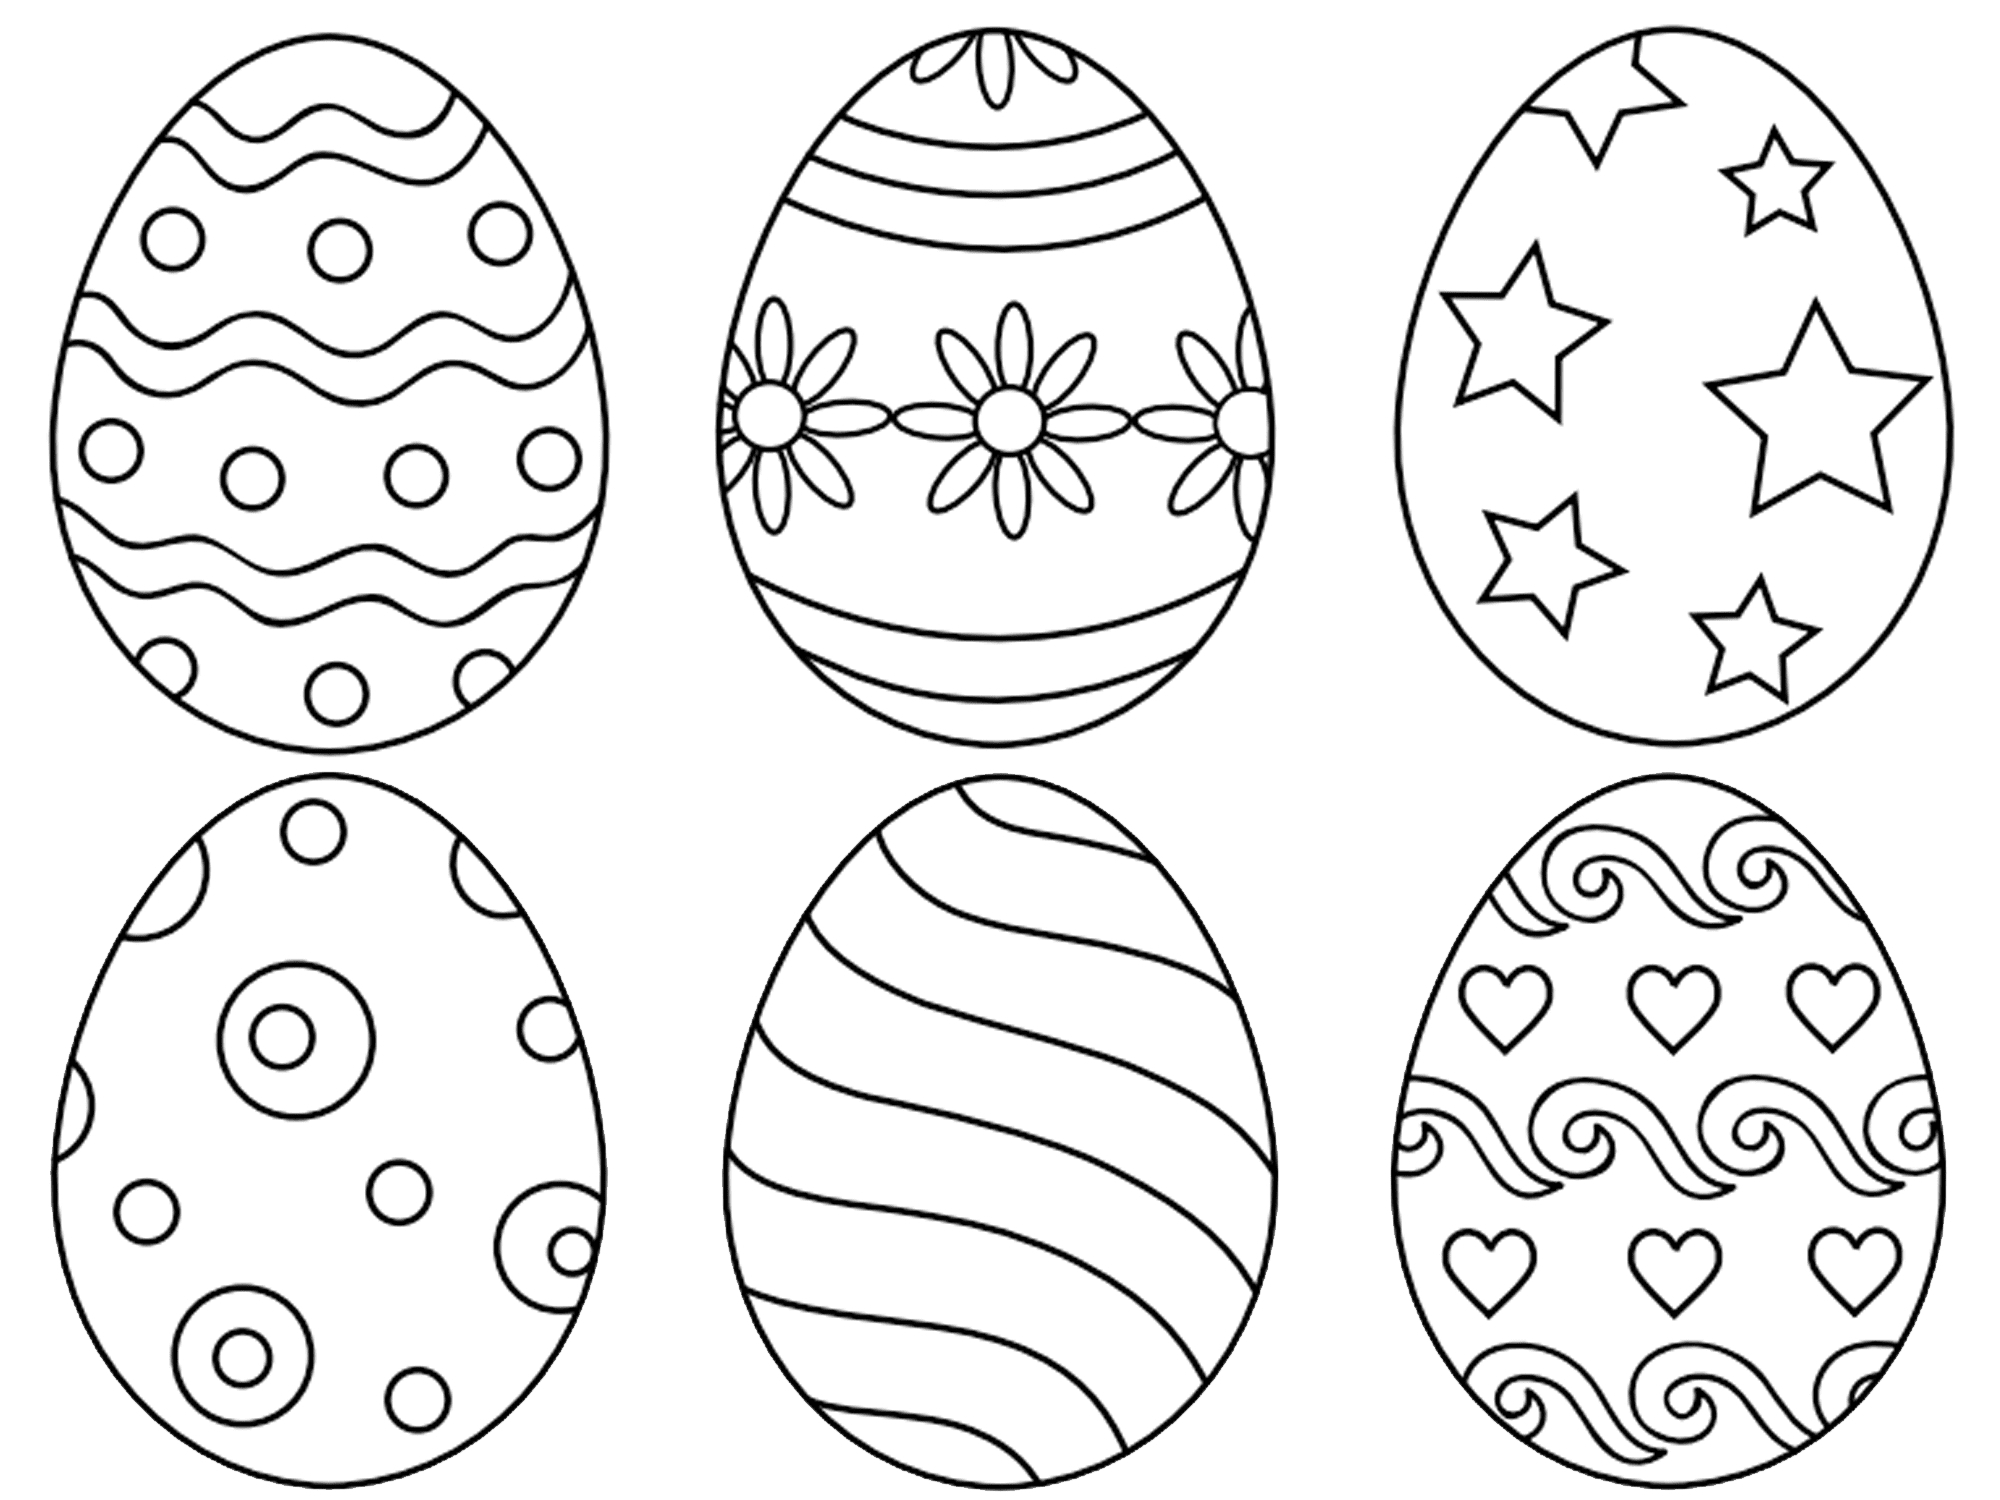 Easter Basket Coloring Pages Printable Gallery to Print Of Easter Egg Designs Coloring Pages to Print